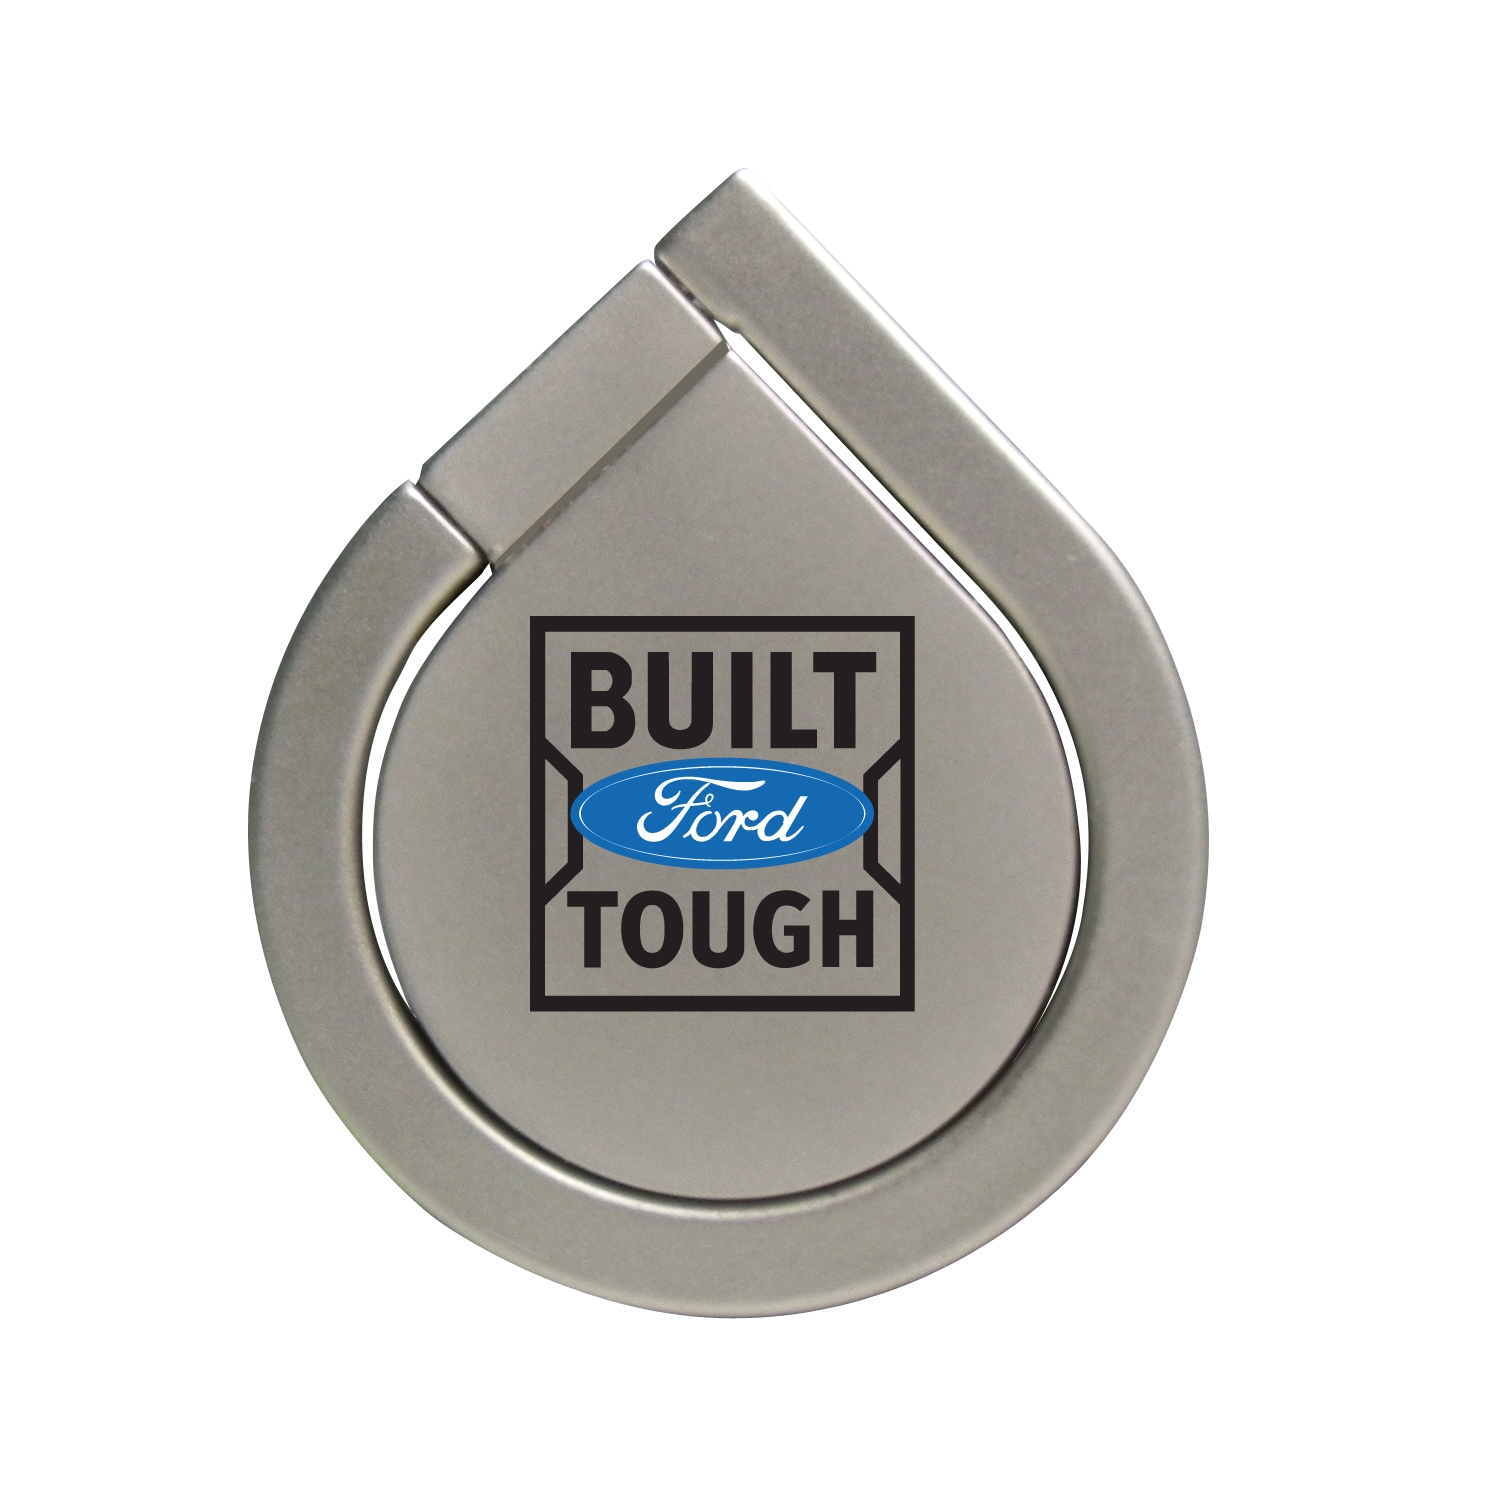 Ford Built Ford Tough Silver 360 Degree Rotation Finger Ring Holder for Cell Phone